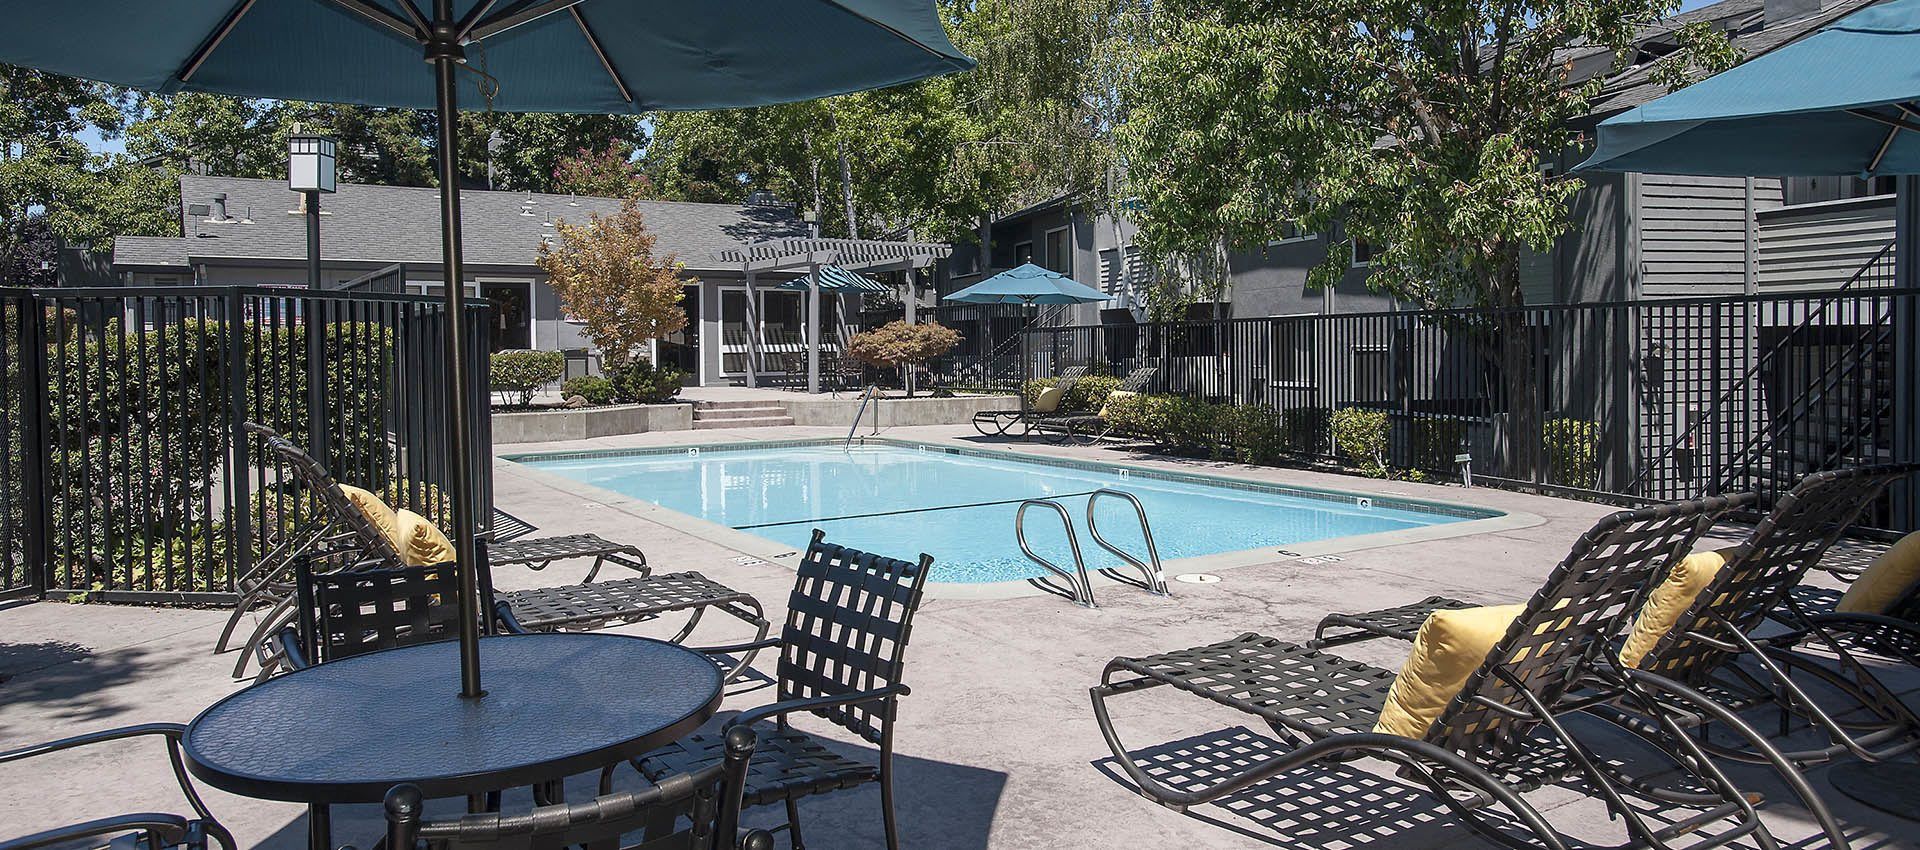 Picnic Table With Umbrella Near Pool at Plum Tree Apartment Homes in Martinez, CA